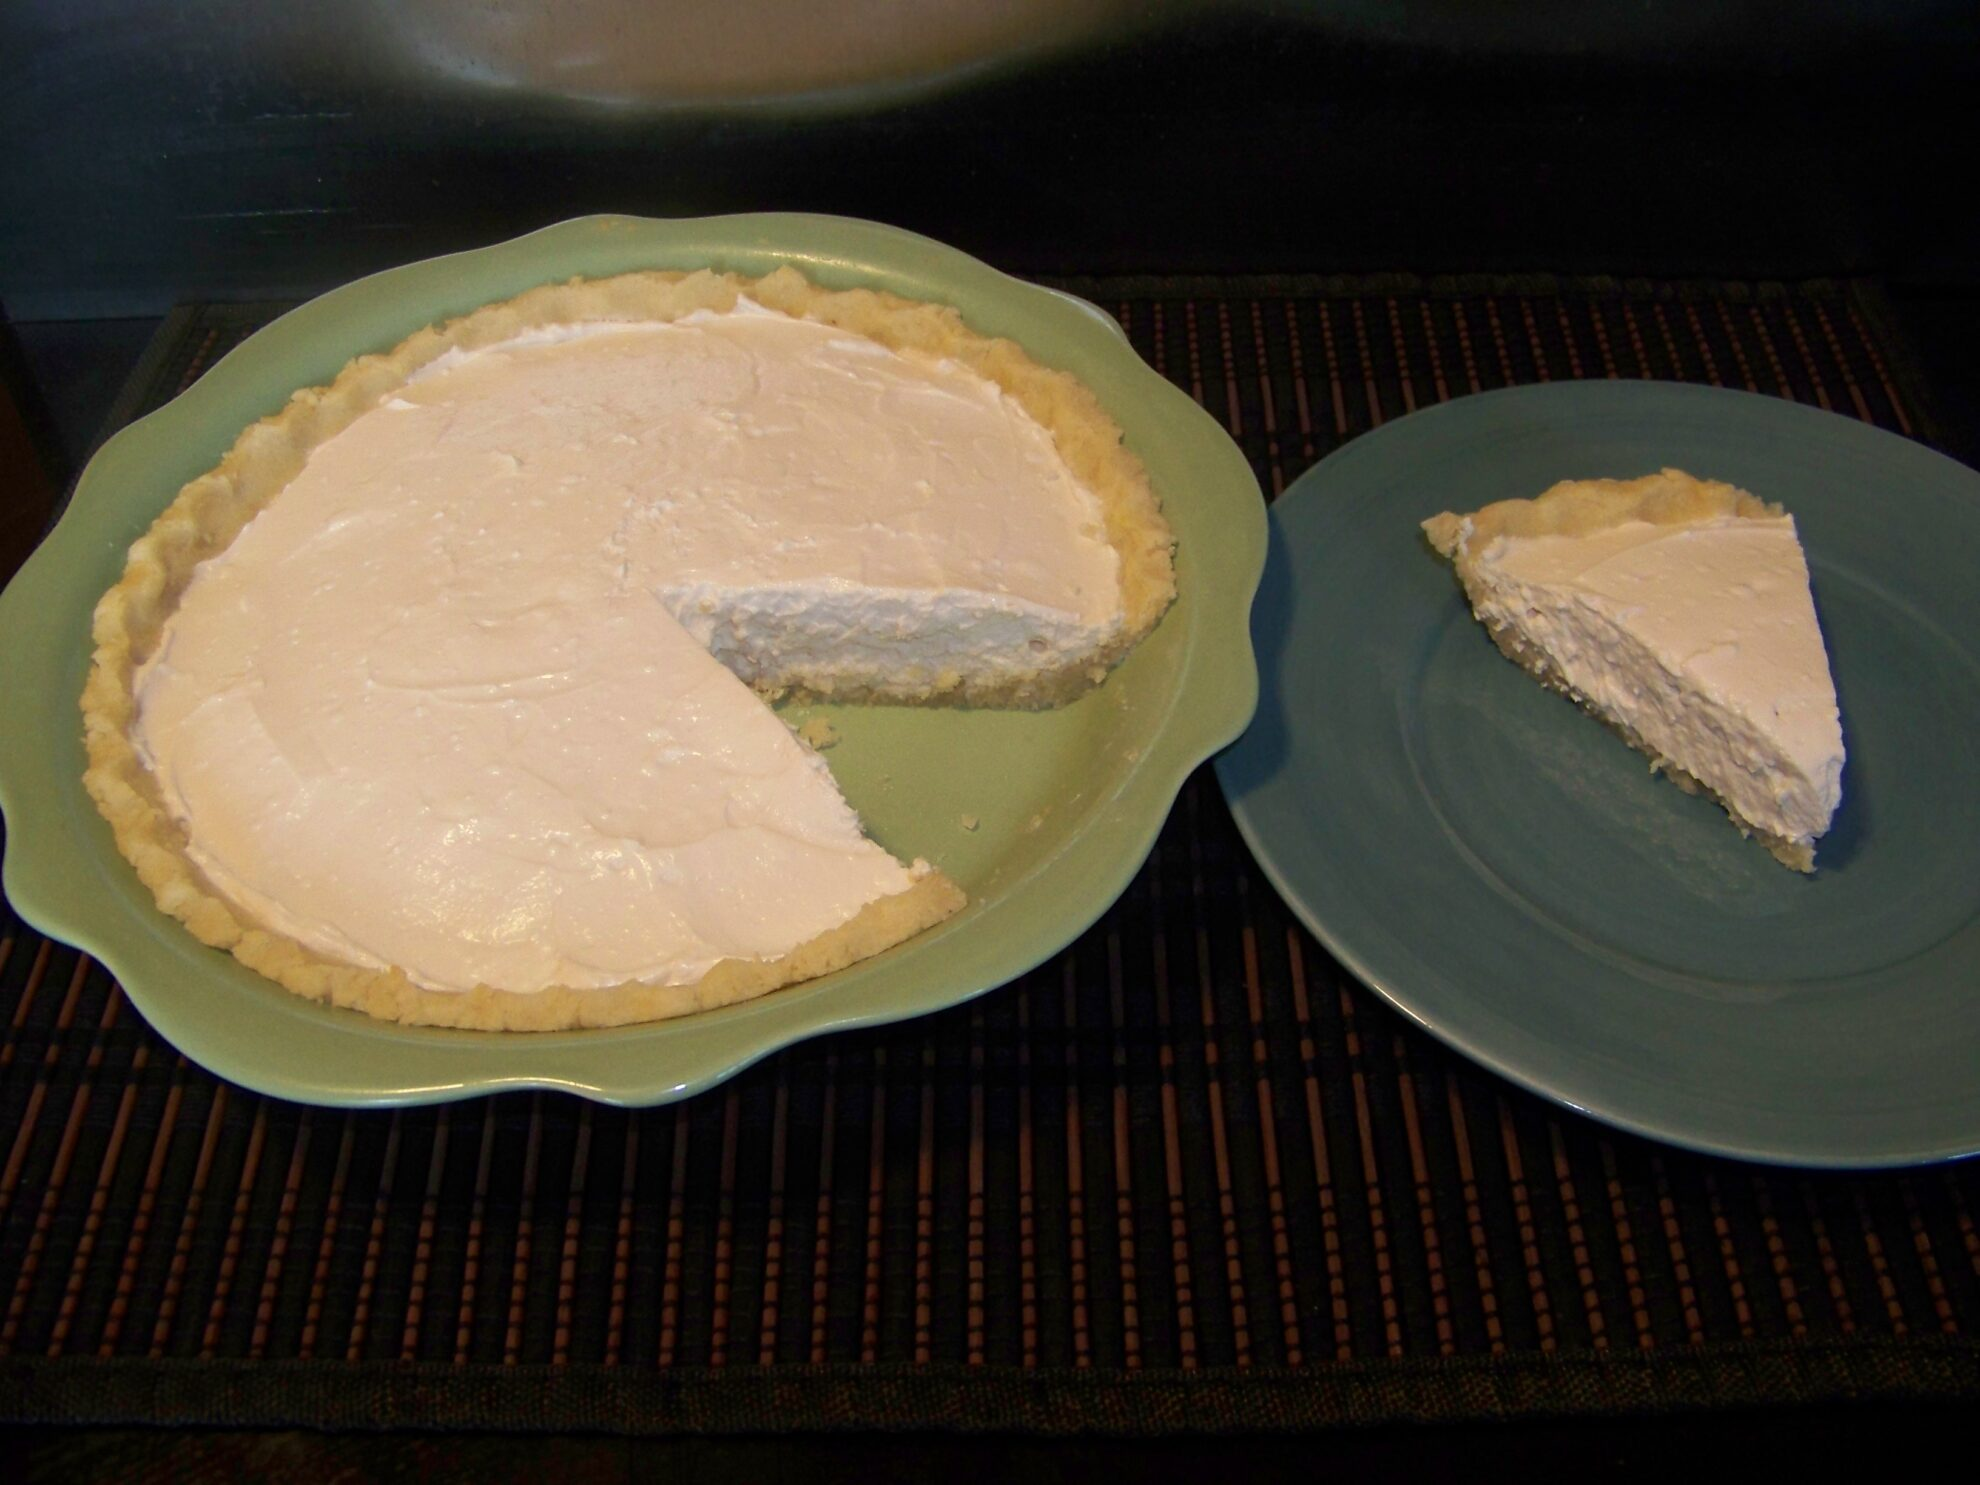 Creamy Key Lime Pie with Almond Flour Crust